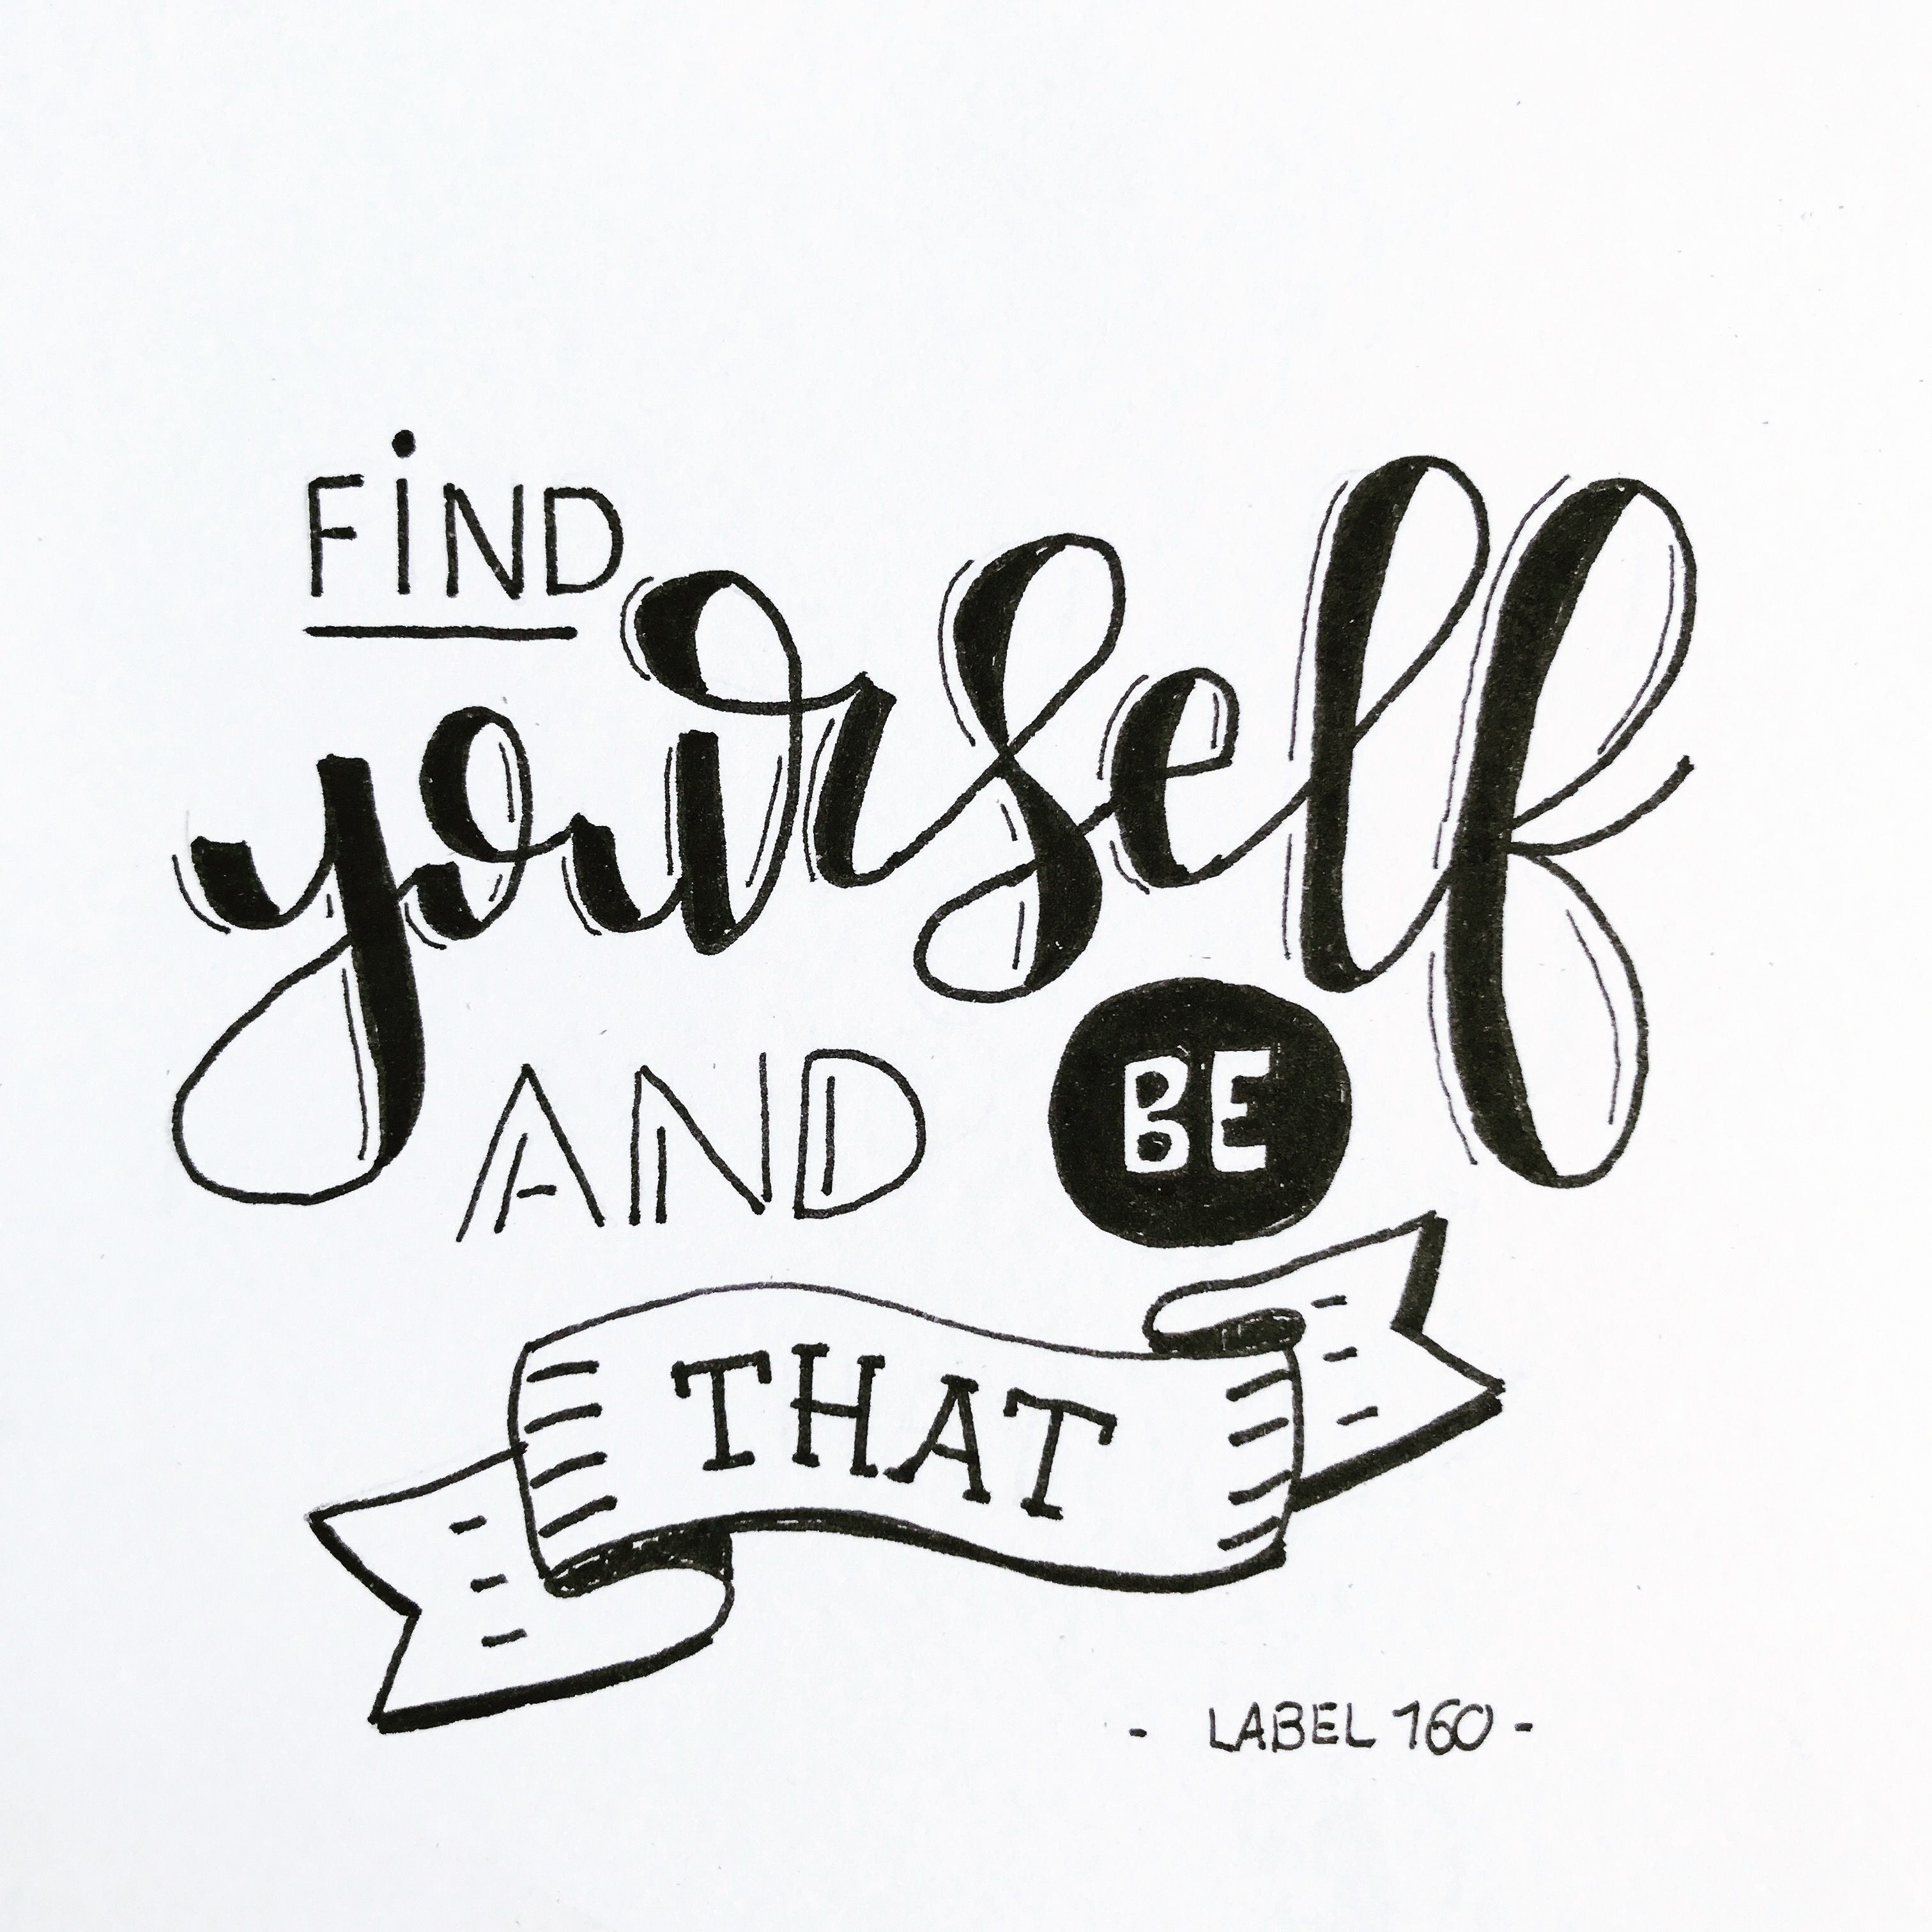 Quotes Calligraphy Handlettering Inspiration Find Yourself And Be That  Bullet